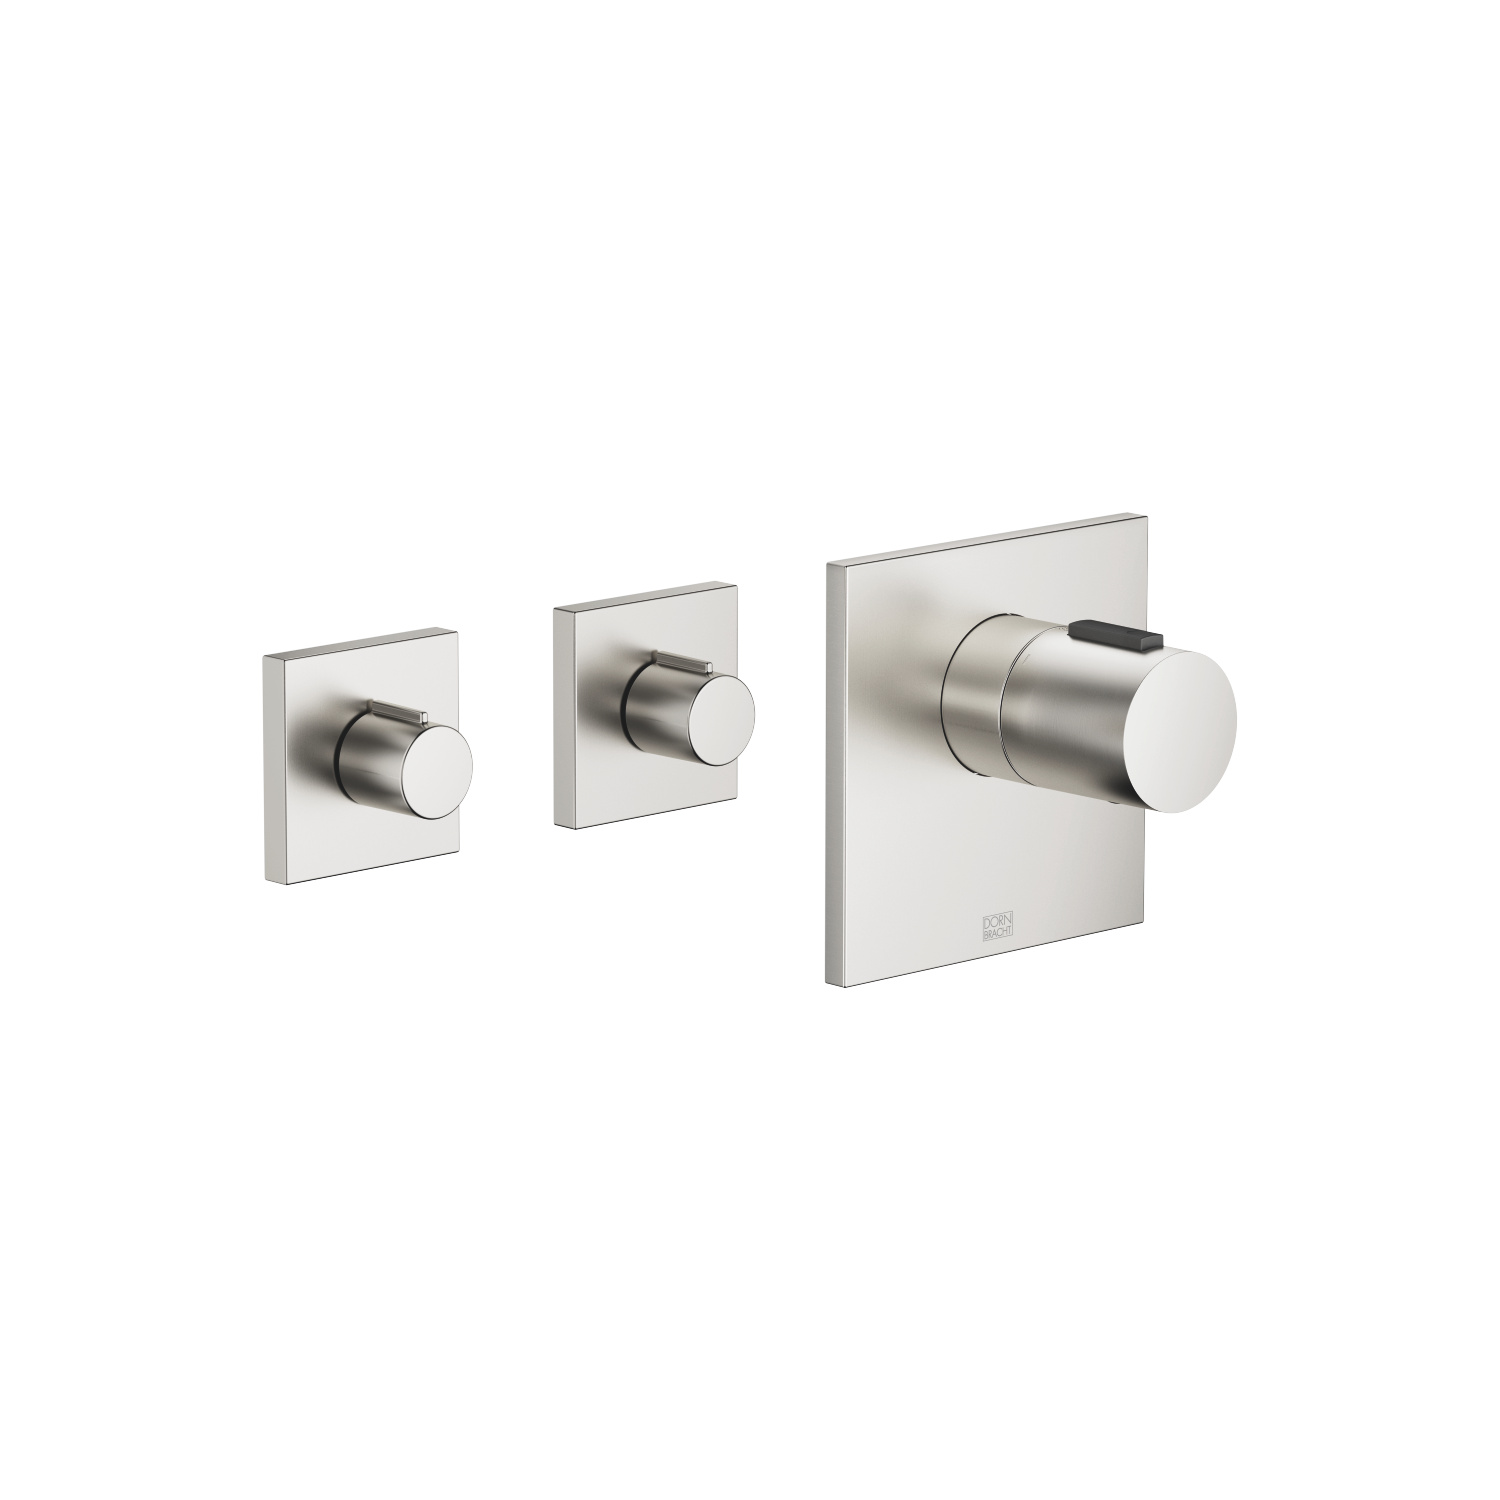 xTOOL thermostat with two volume controls - platinum matte